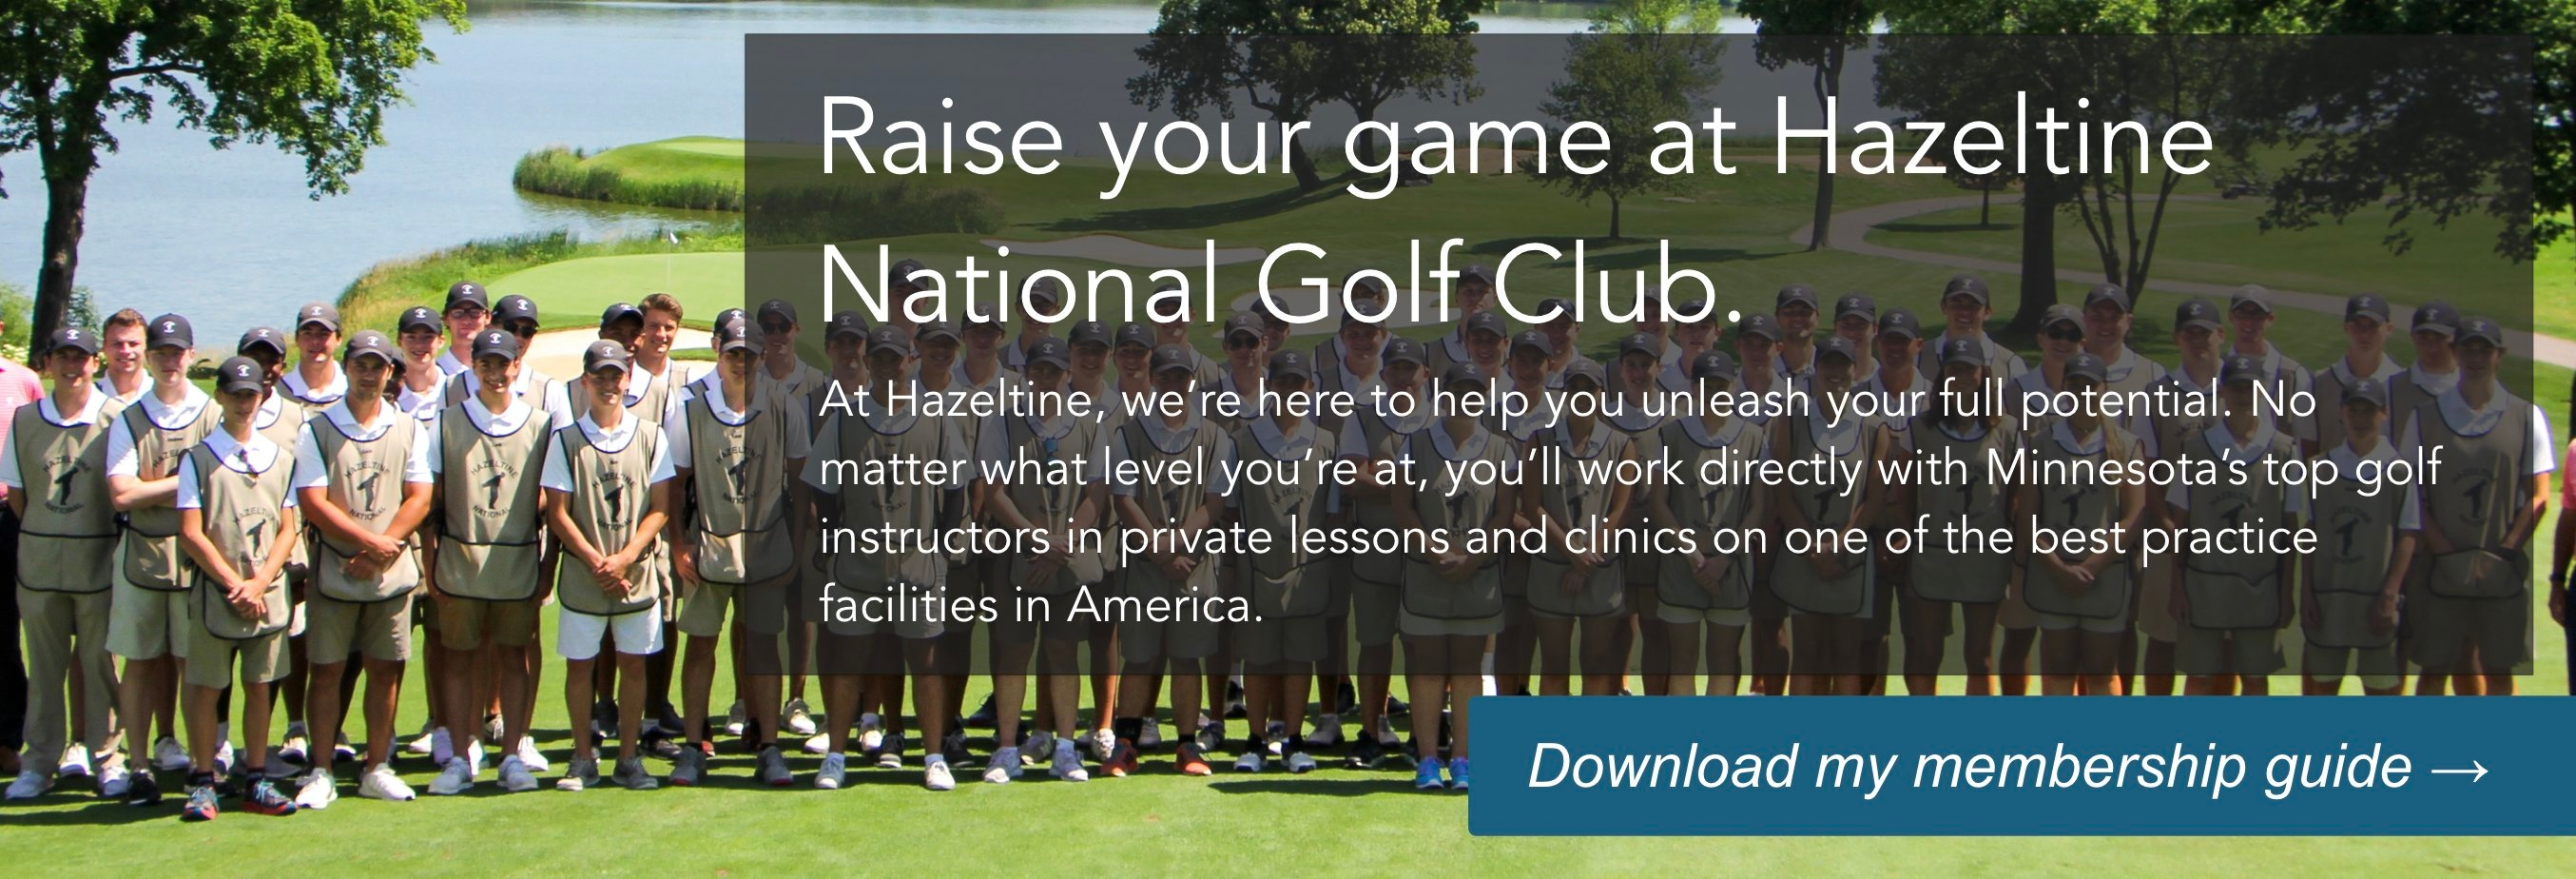 Raise your game at Hazeltine National